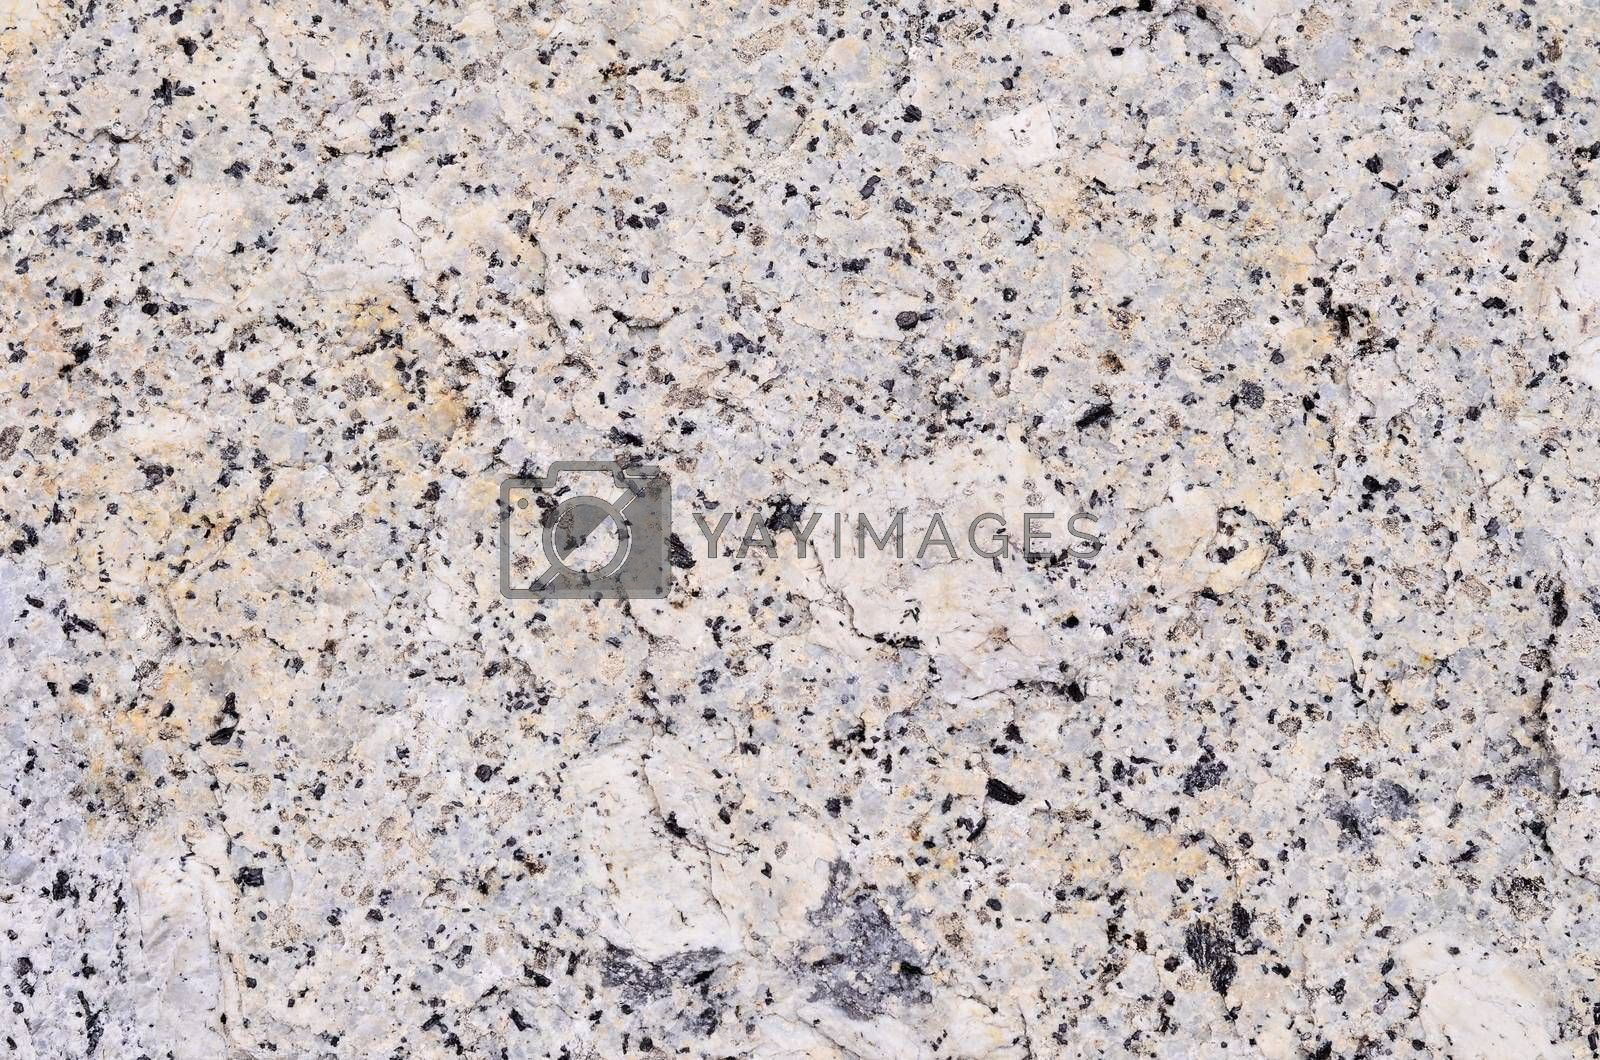 Rock or stone wallpaper Rough surface Black and white pattern